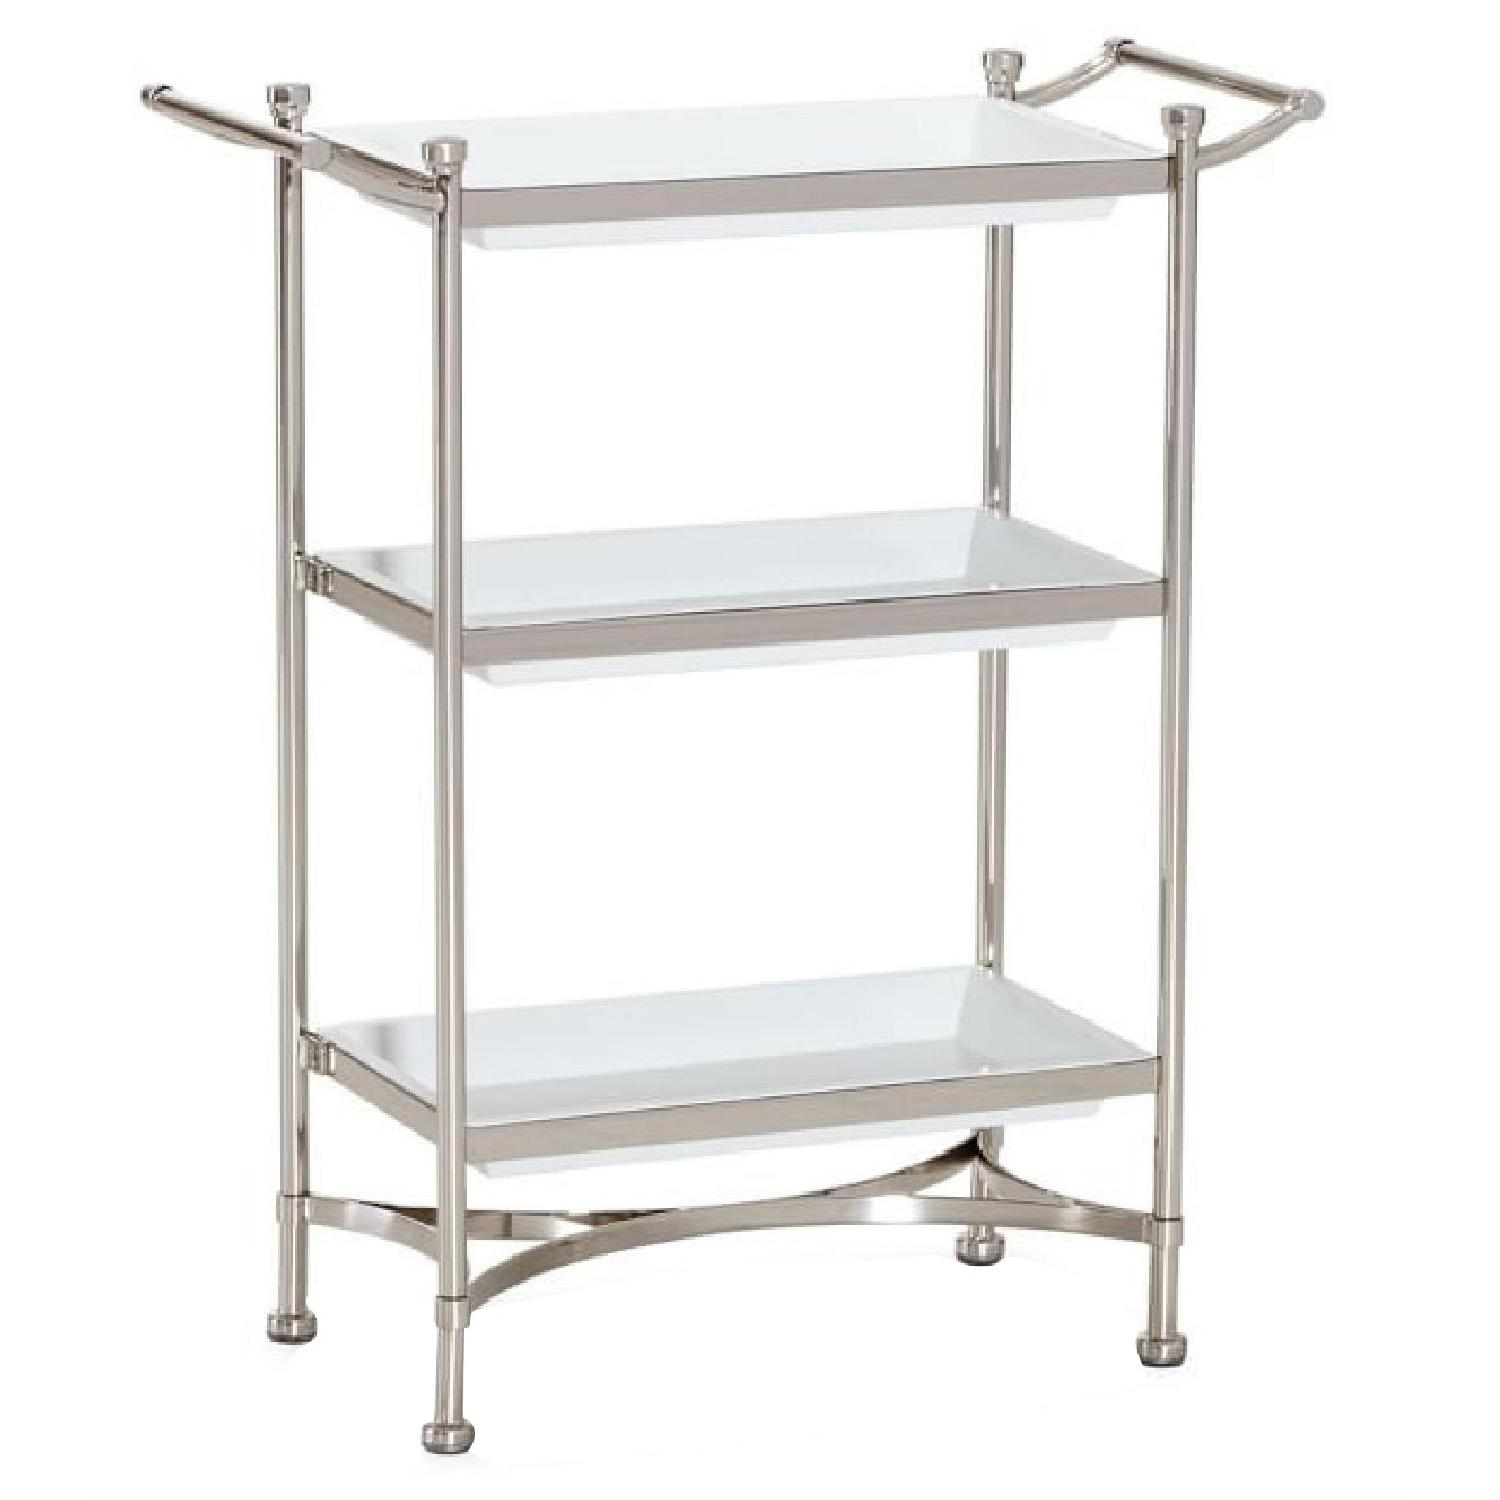 Pottery Barn Bathroom Storage Shelving Unit Aptdeco